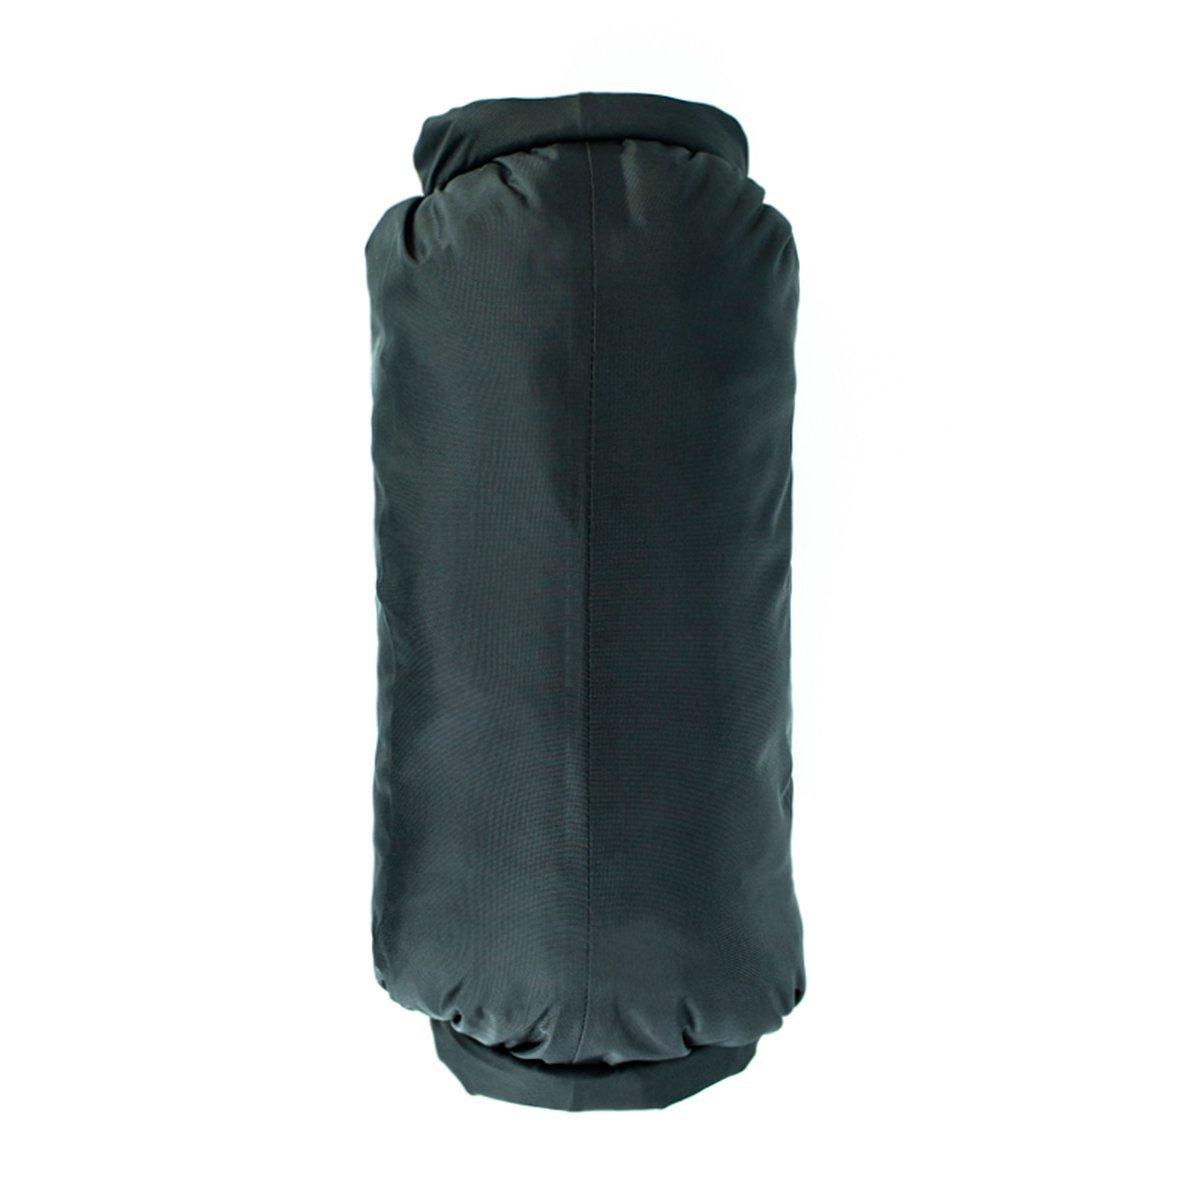 Restrap | Dry Bag - Double Roll - 14 litre | Dry Sack | Waterproof Dry Bag | Black